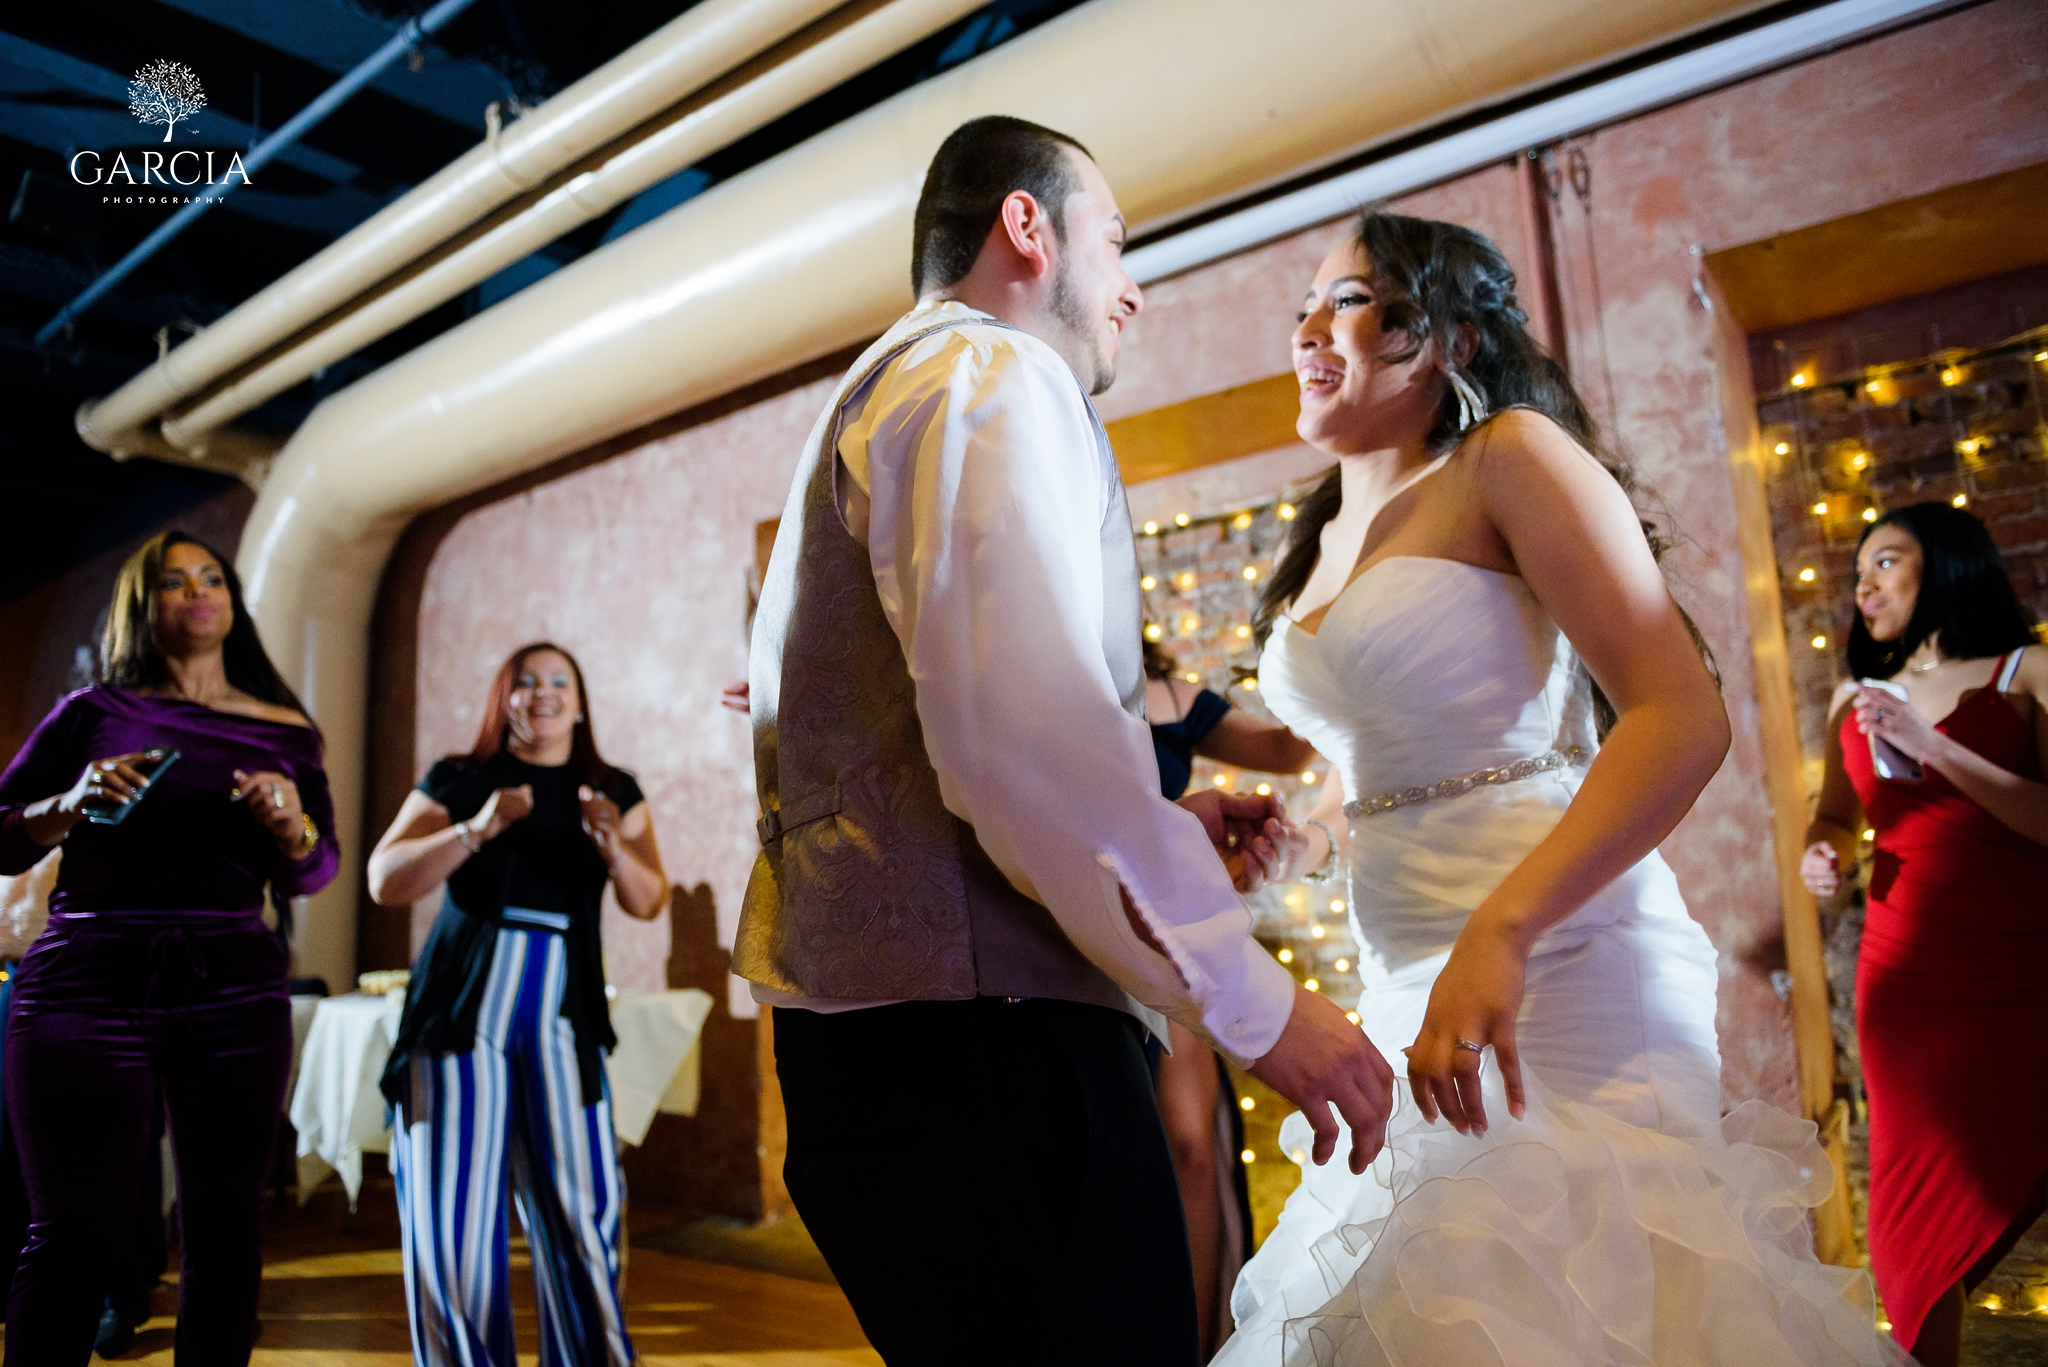 Emily-Junior-Wedding-Garcia-Photography-4587.jpg